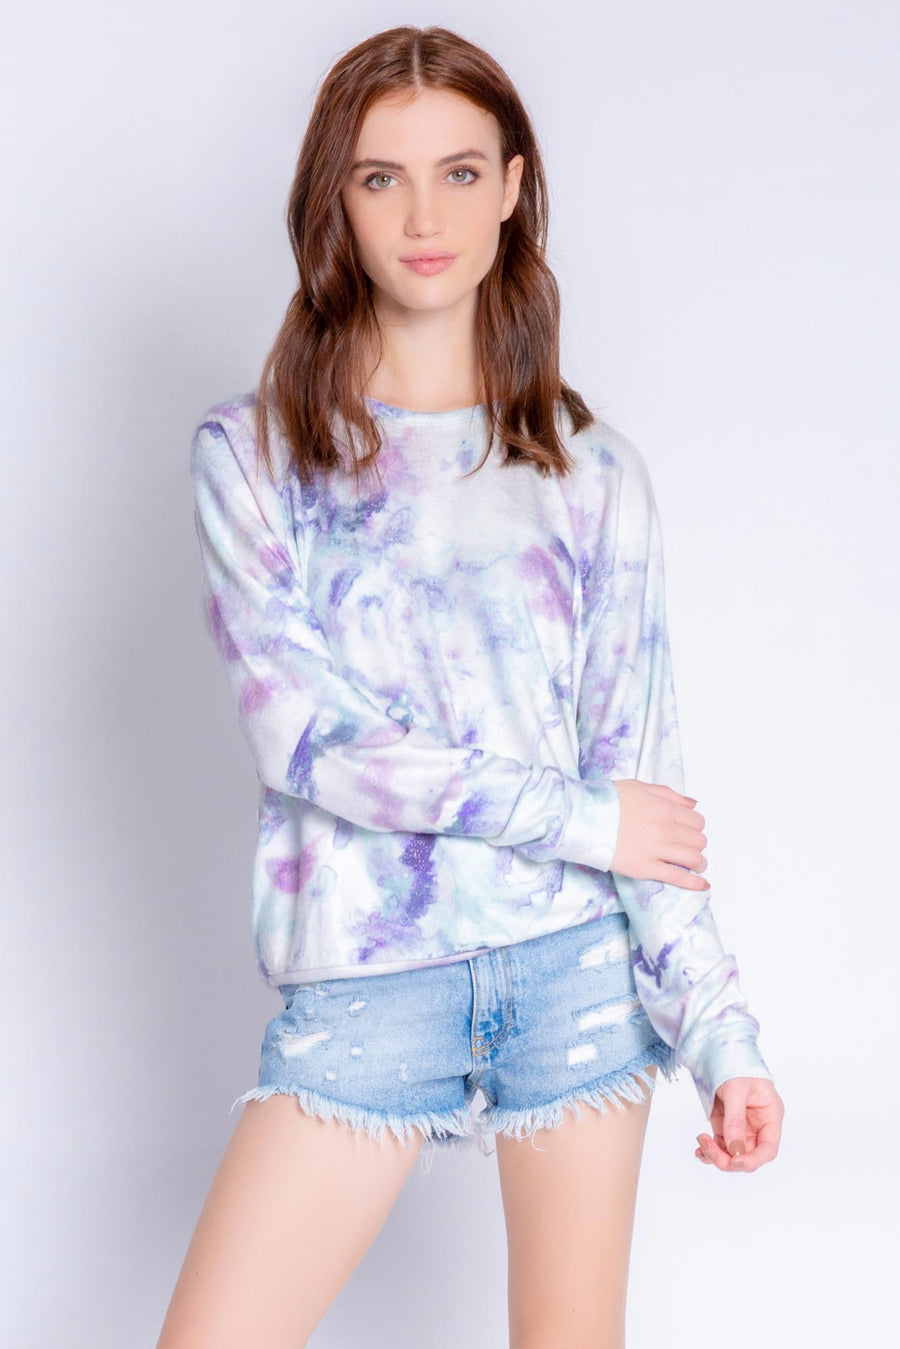 MELTING CRAYONS TIE DYE SWEATER - SEA BLUE